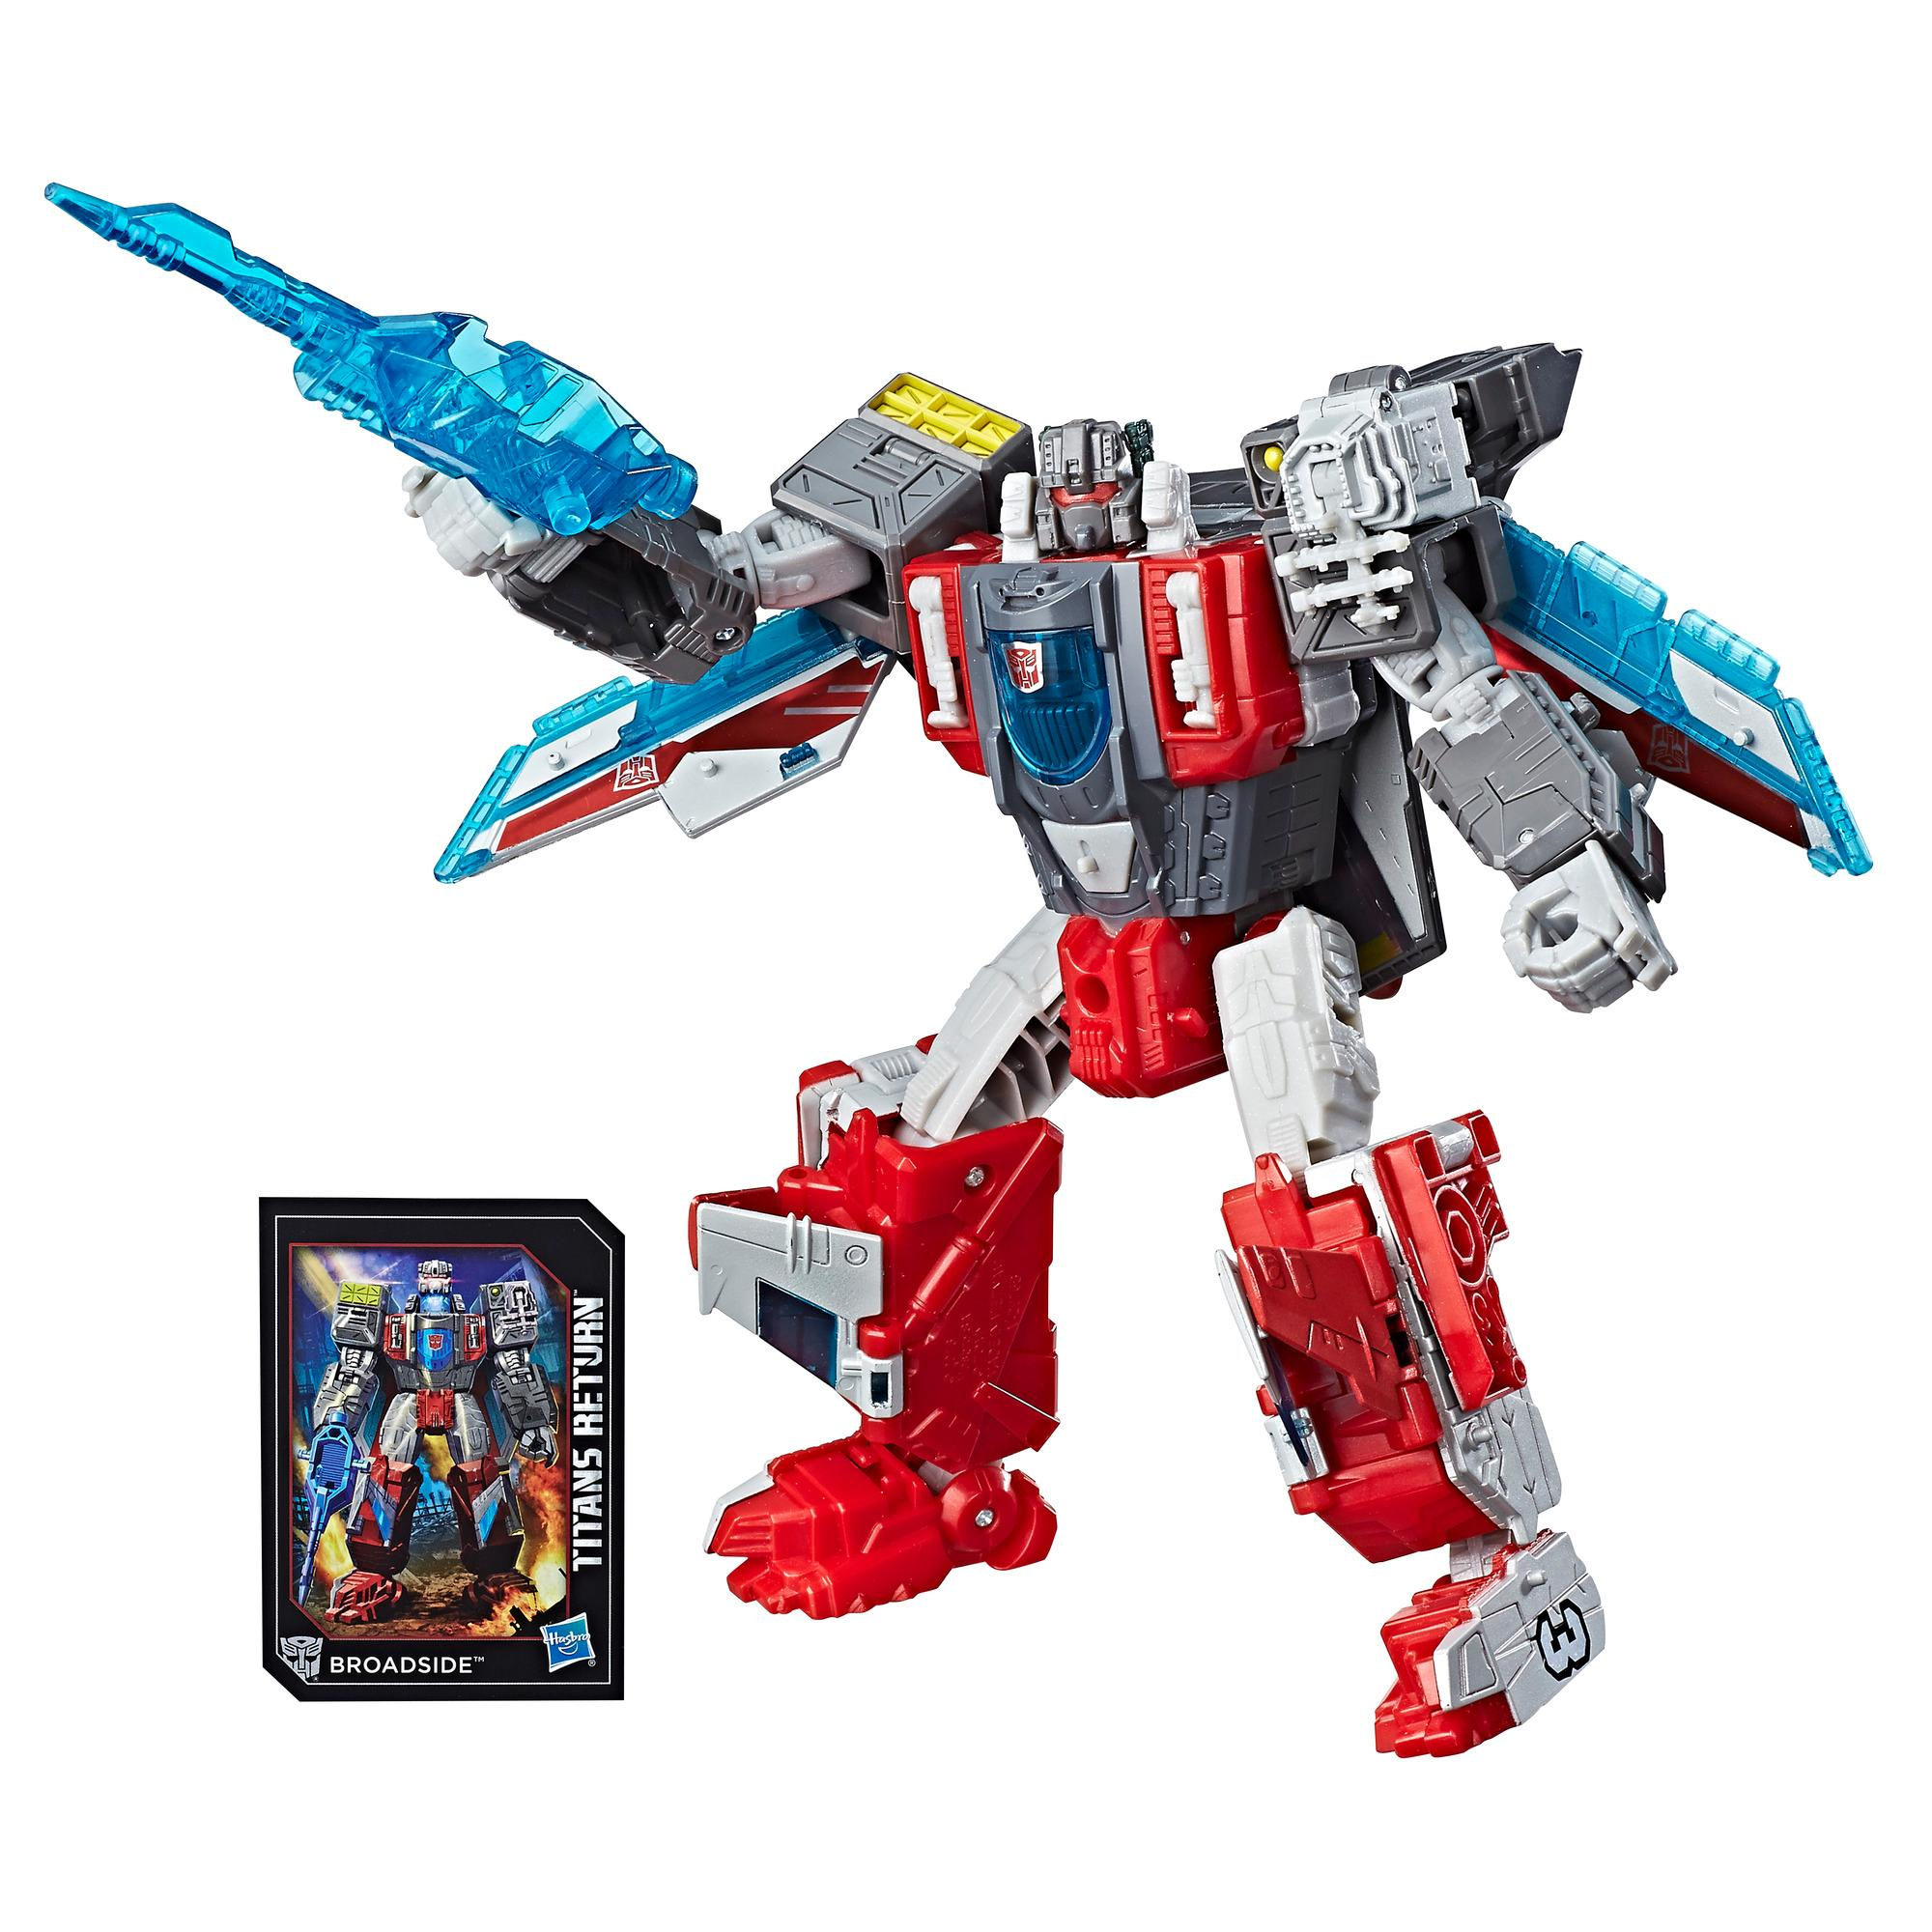 Transformers Generations Titans Return Voyager Class Broadside & Blunderbuss